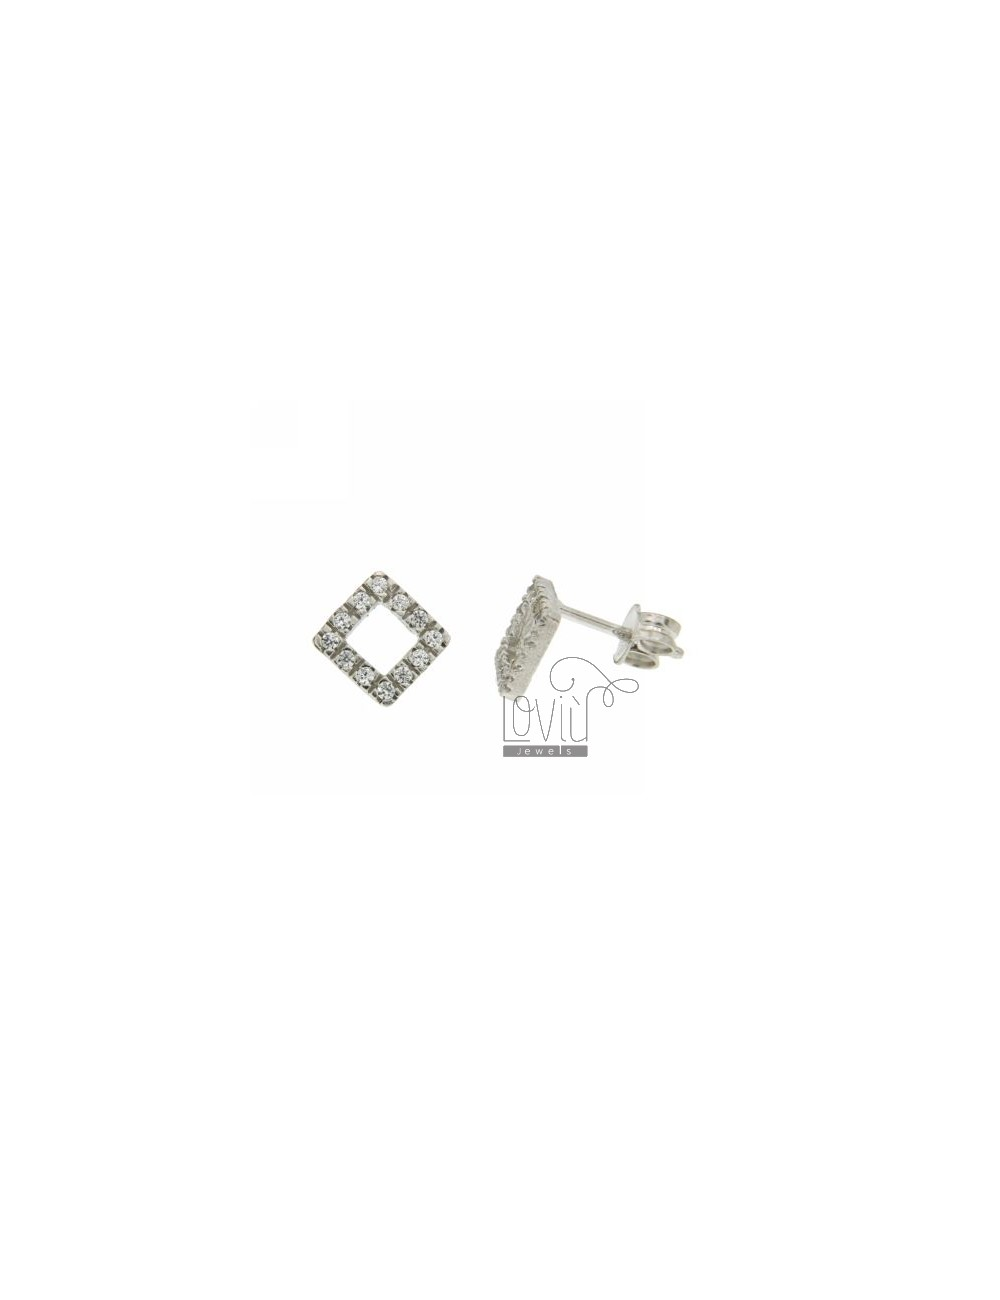 A SQUARE PIERCED EARRINGS WITH CUBIC ZIRCONIA IN LOBO AG RHODIUM TIT 925